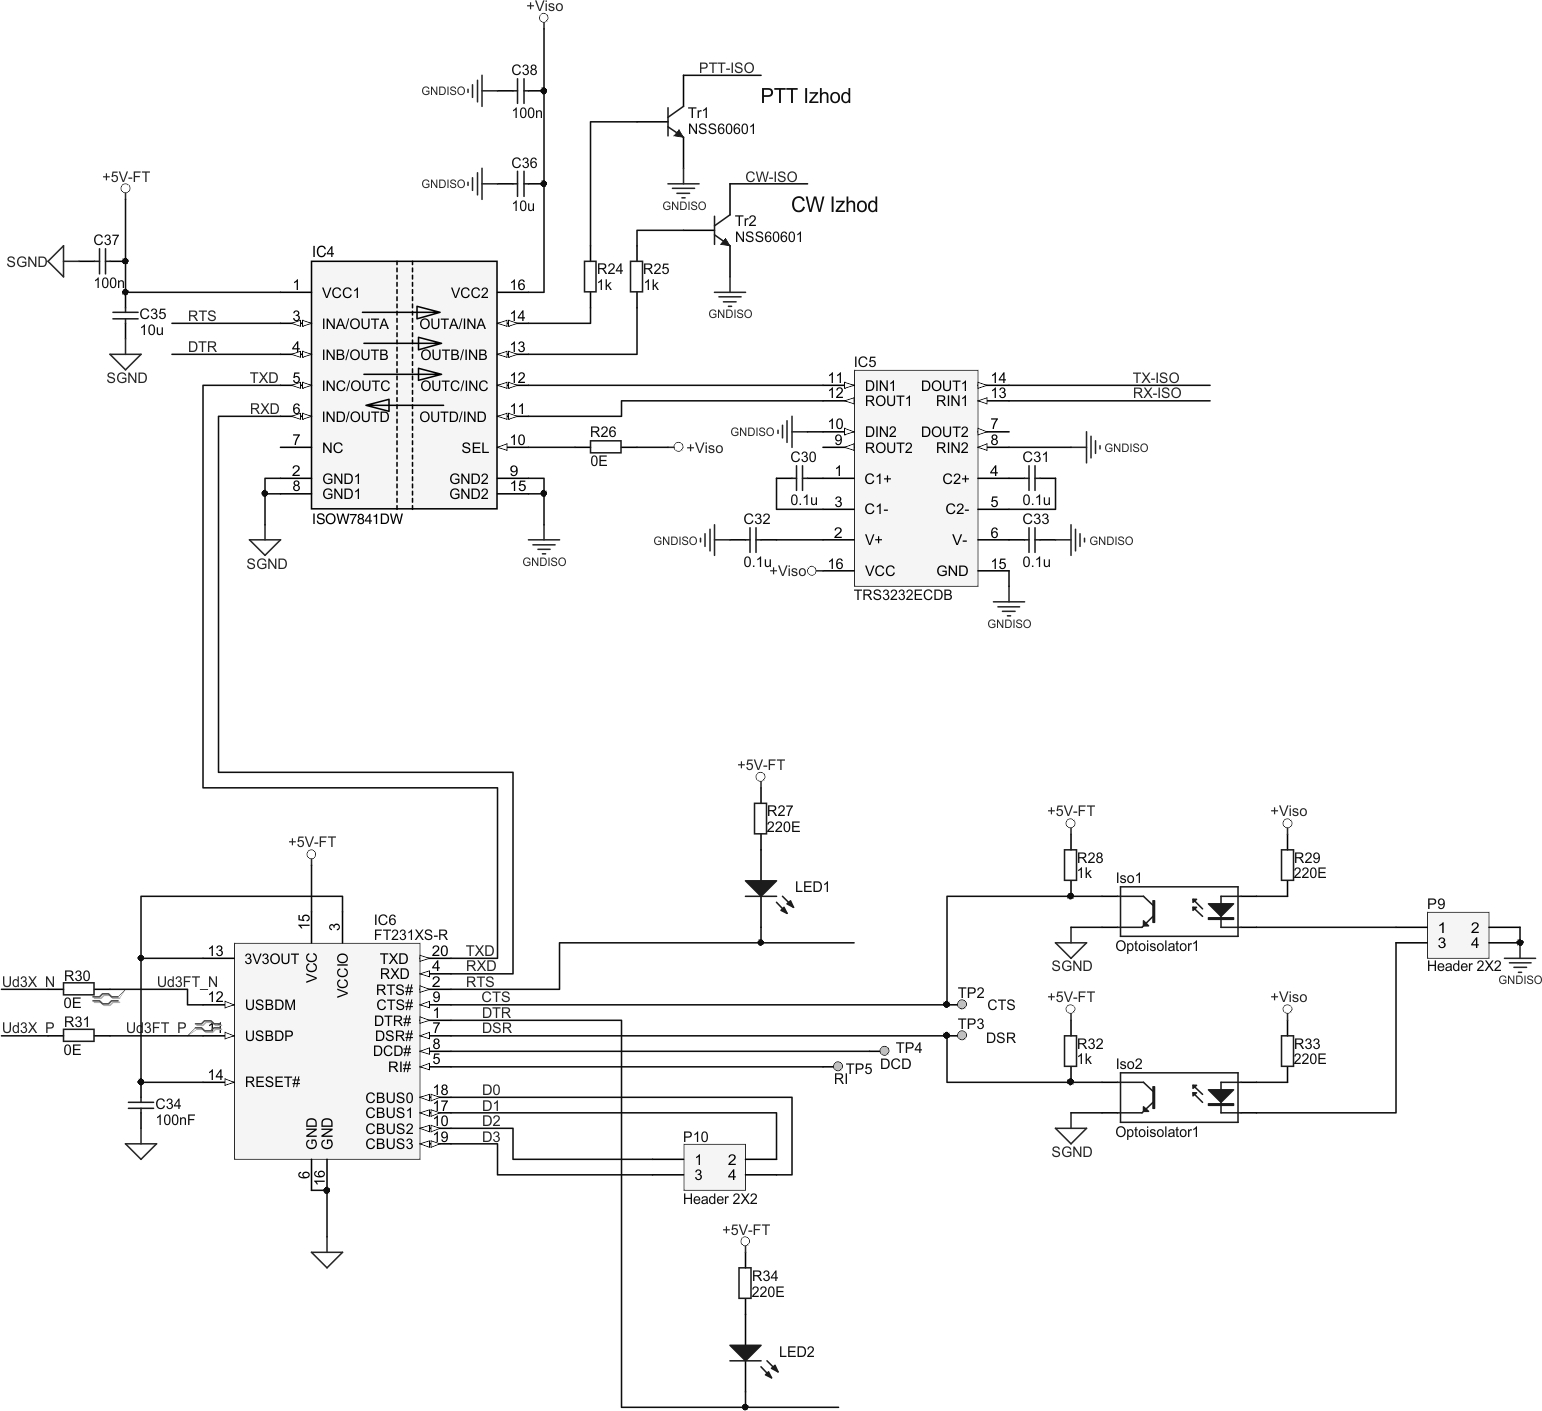 Mare & Gal Electronics » Blog Archive » Tiny, isolated USB ... Usb To Serial Schematic on usb switch schematic, usb port schematic, speakers schematic, wireless schematic, usb circuit schematic, usb hub schematic, usb controller schematic, usb memory schematic, usb cable schematic, gps schematic, converter schematic, usb to ttl converter circuit,